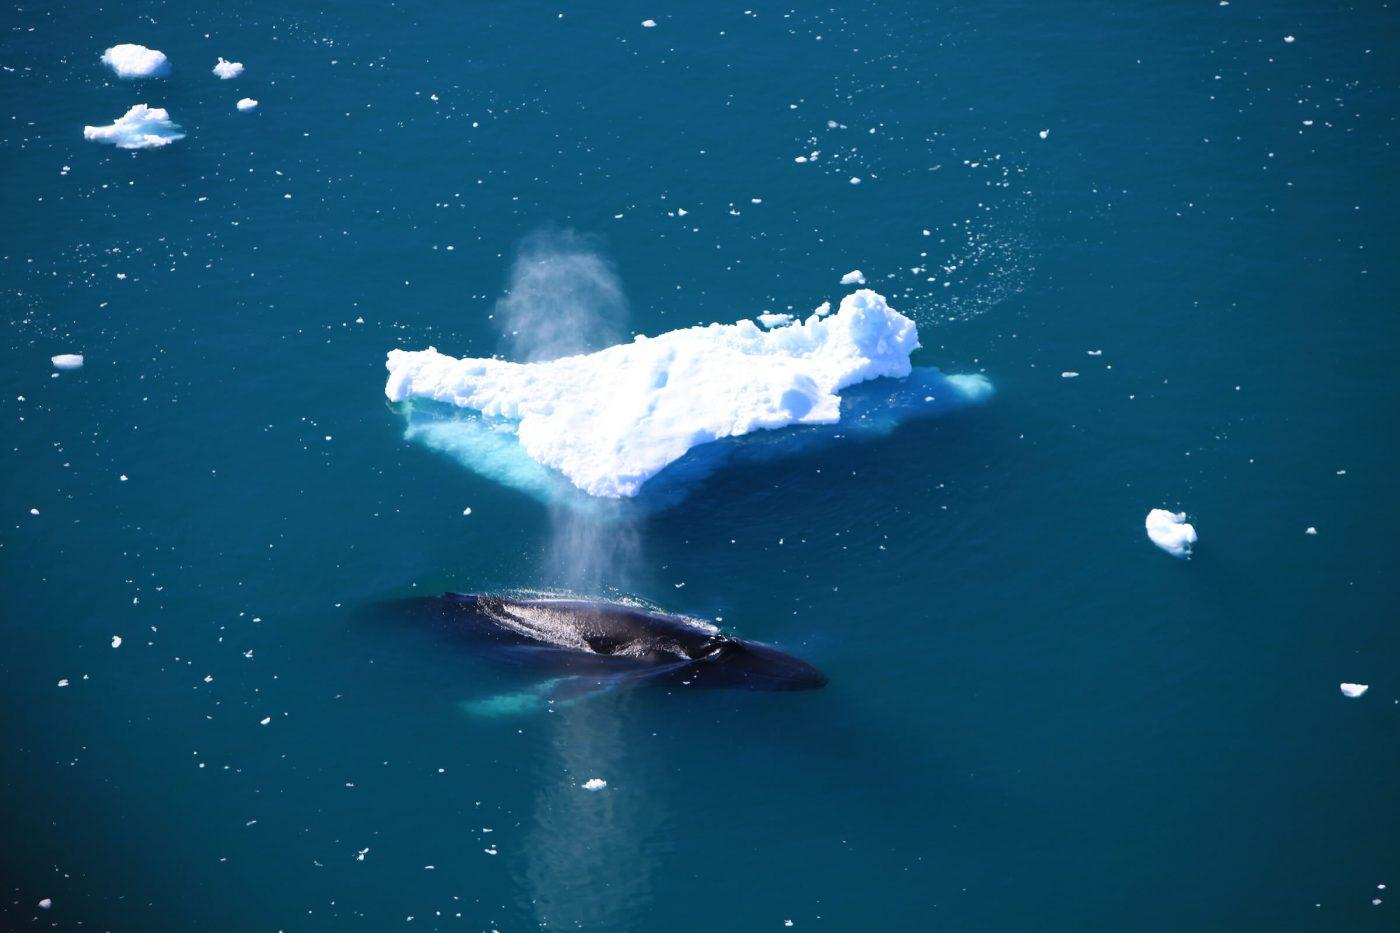 An aerial view of a humpback surfacing near Ilulissat in Greenland. By Anne Mette Christiansen, Visit Greenland